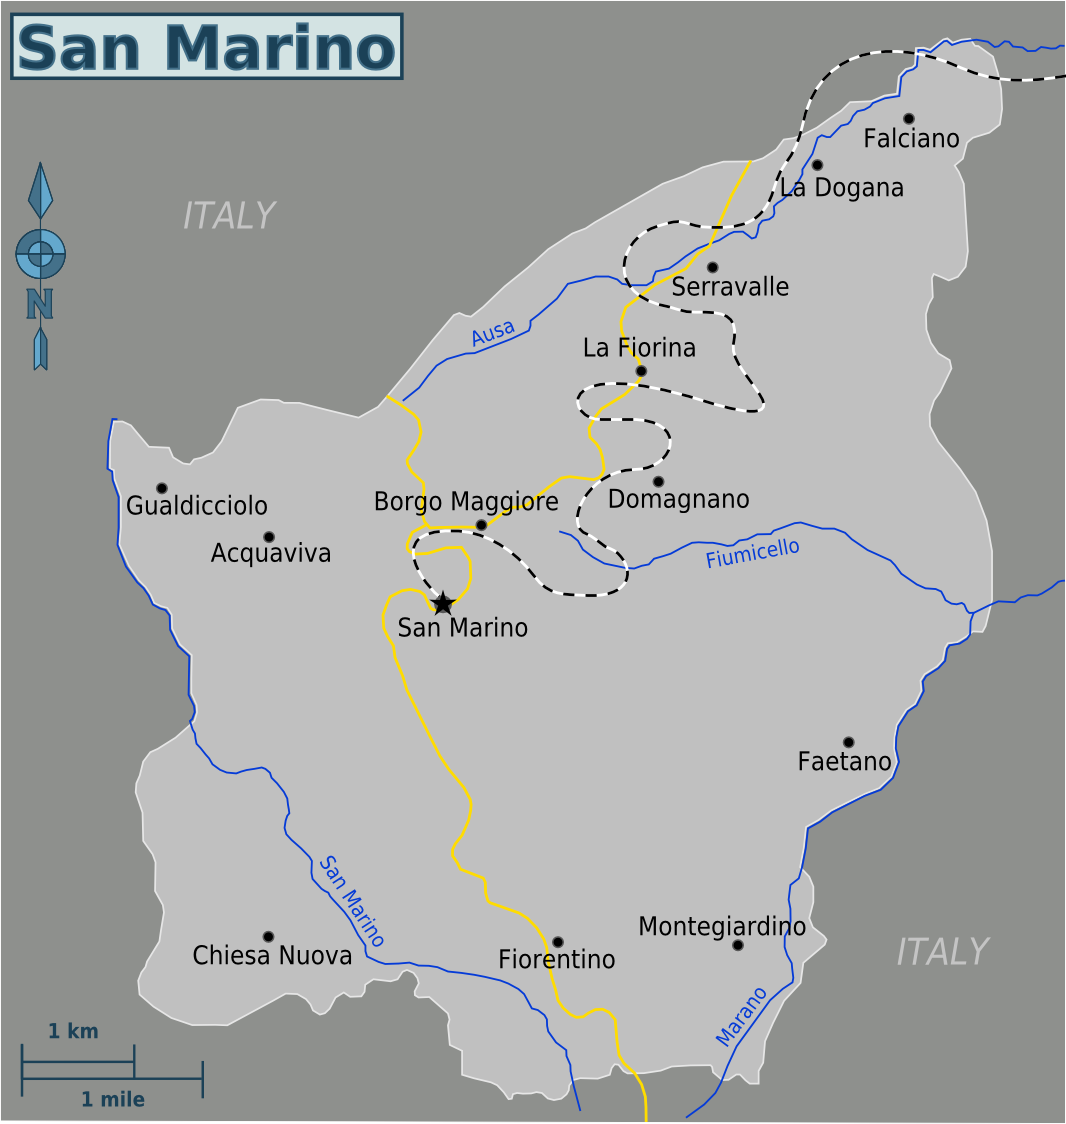 San Marino Travel guide at Wikivoyage